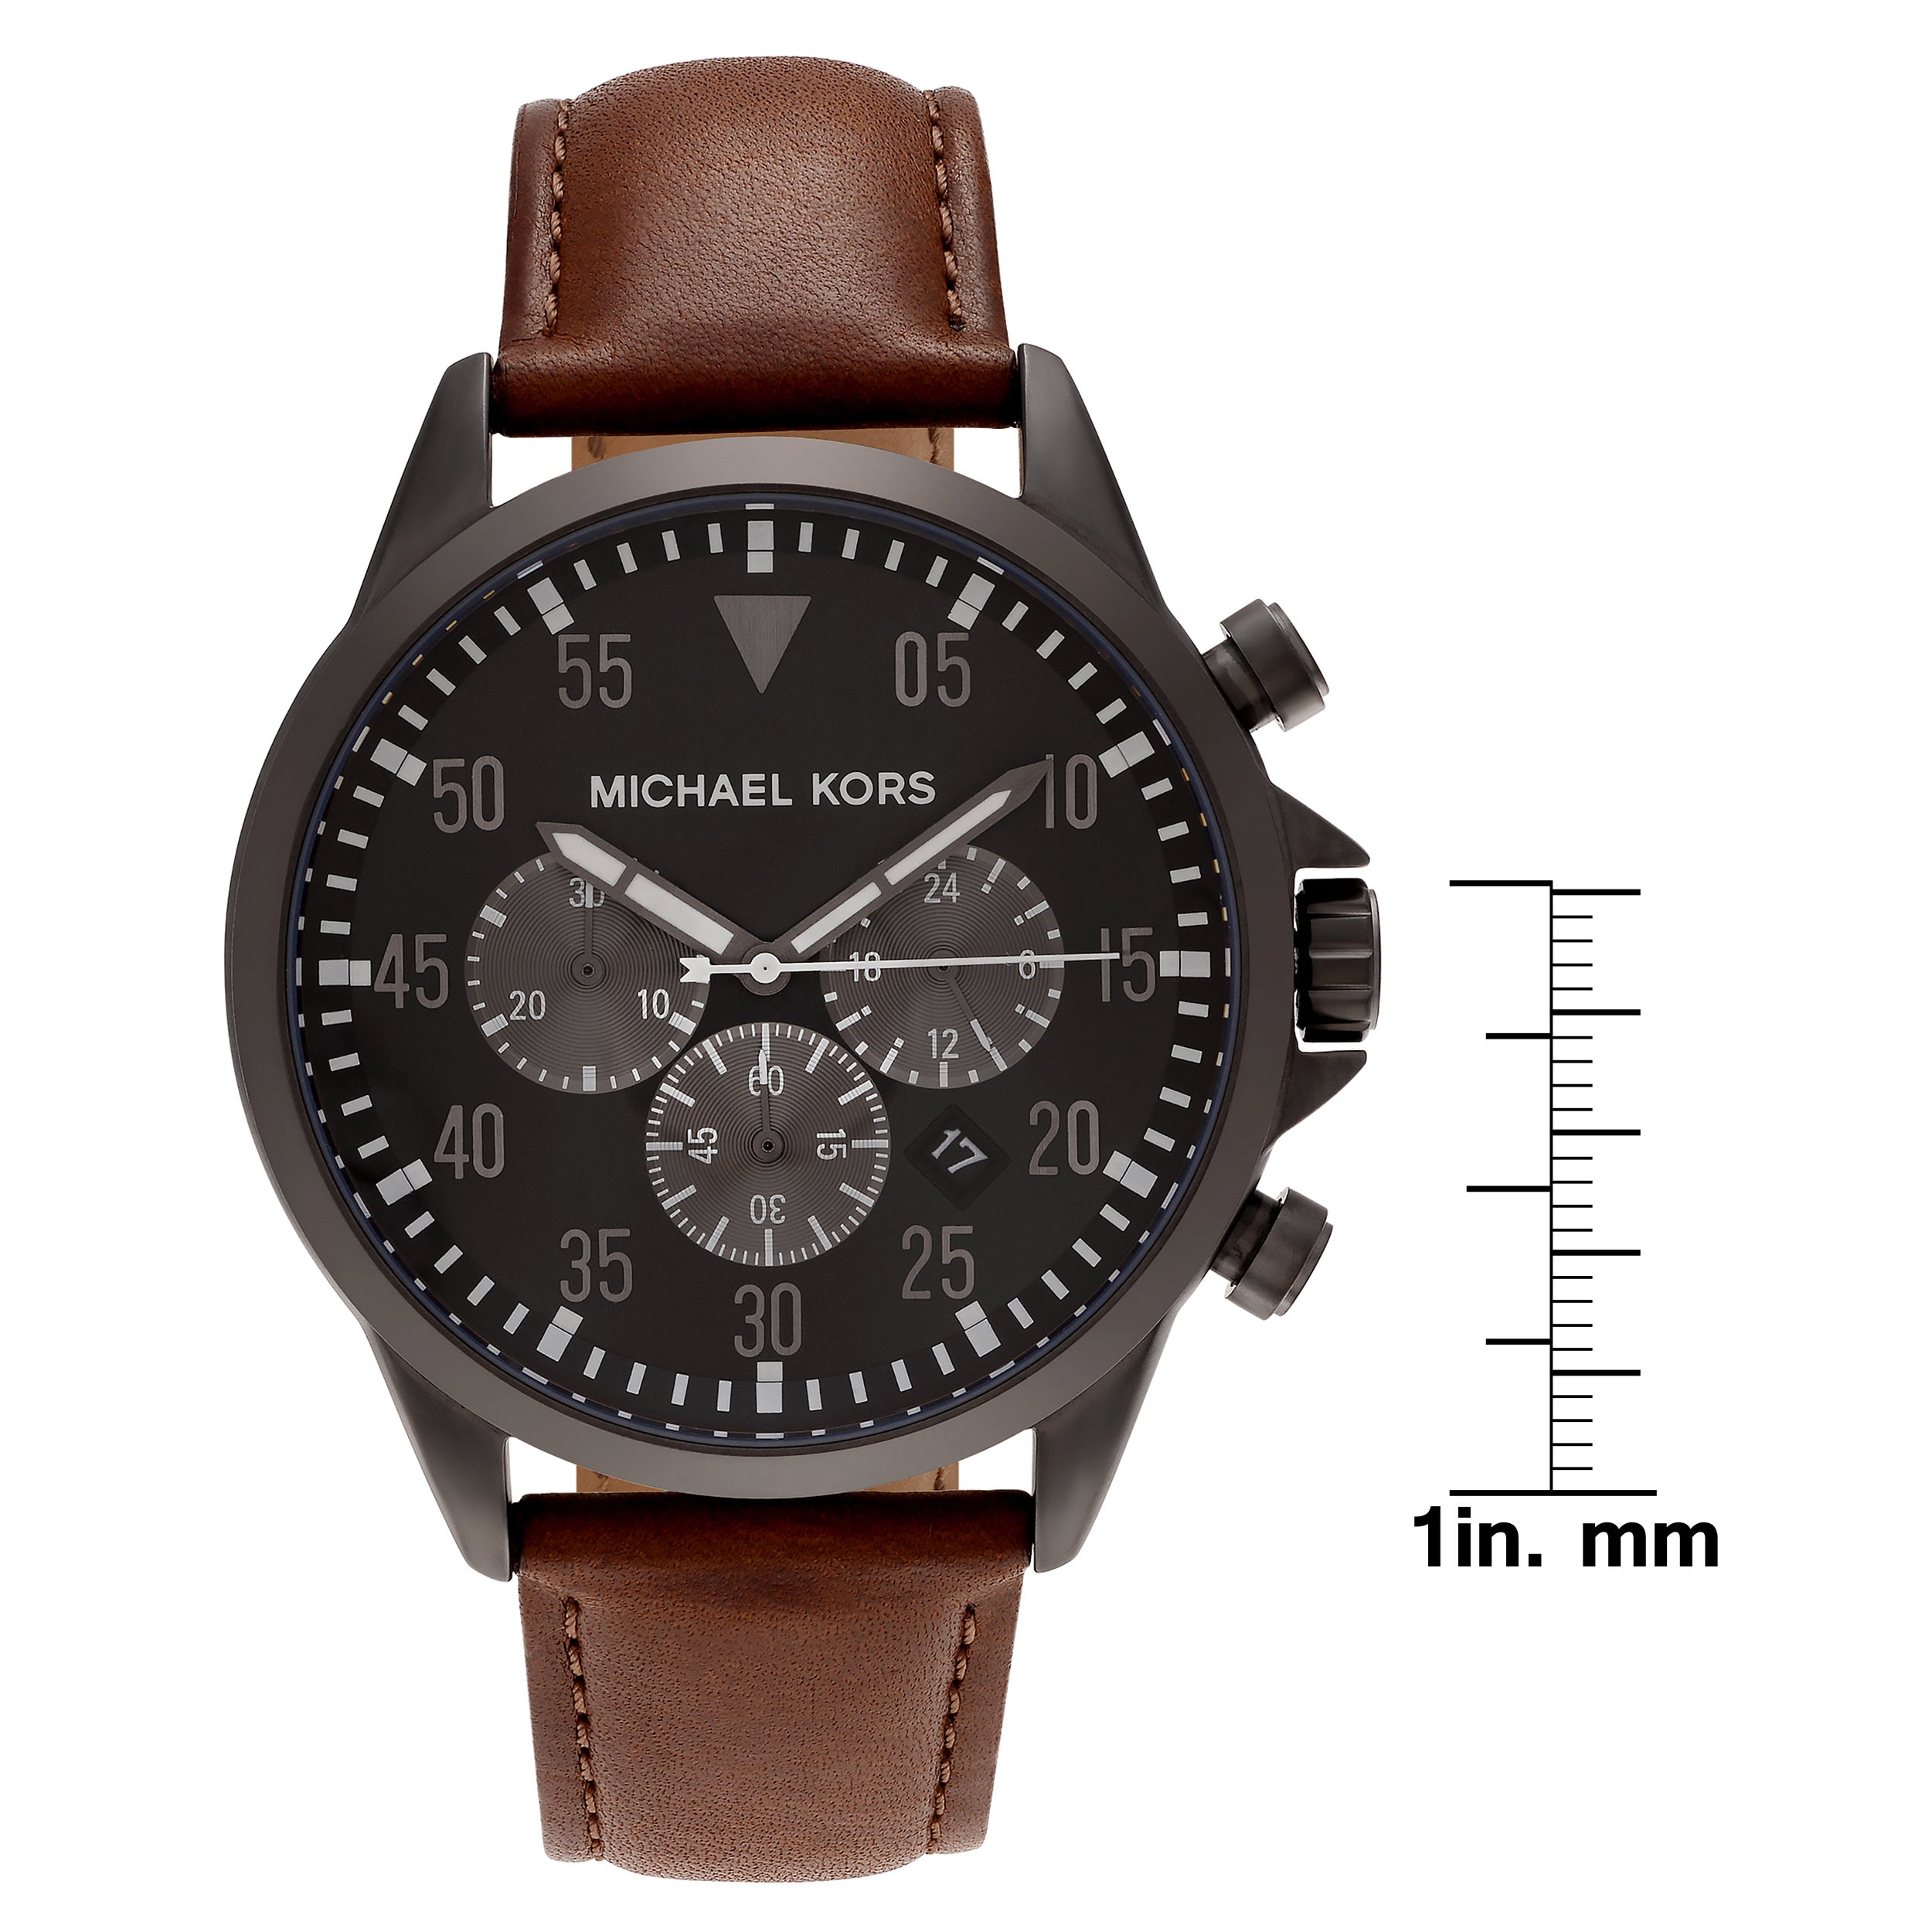 7fa1ba24635 Shop Michael Kors Men s MK8536  Gage  Gunmetal Tone Stainless Steel  Chronograph Dial Leather Strap Watch - Brown - Free Shipping Today -  Overstock - ...